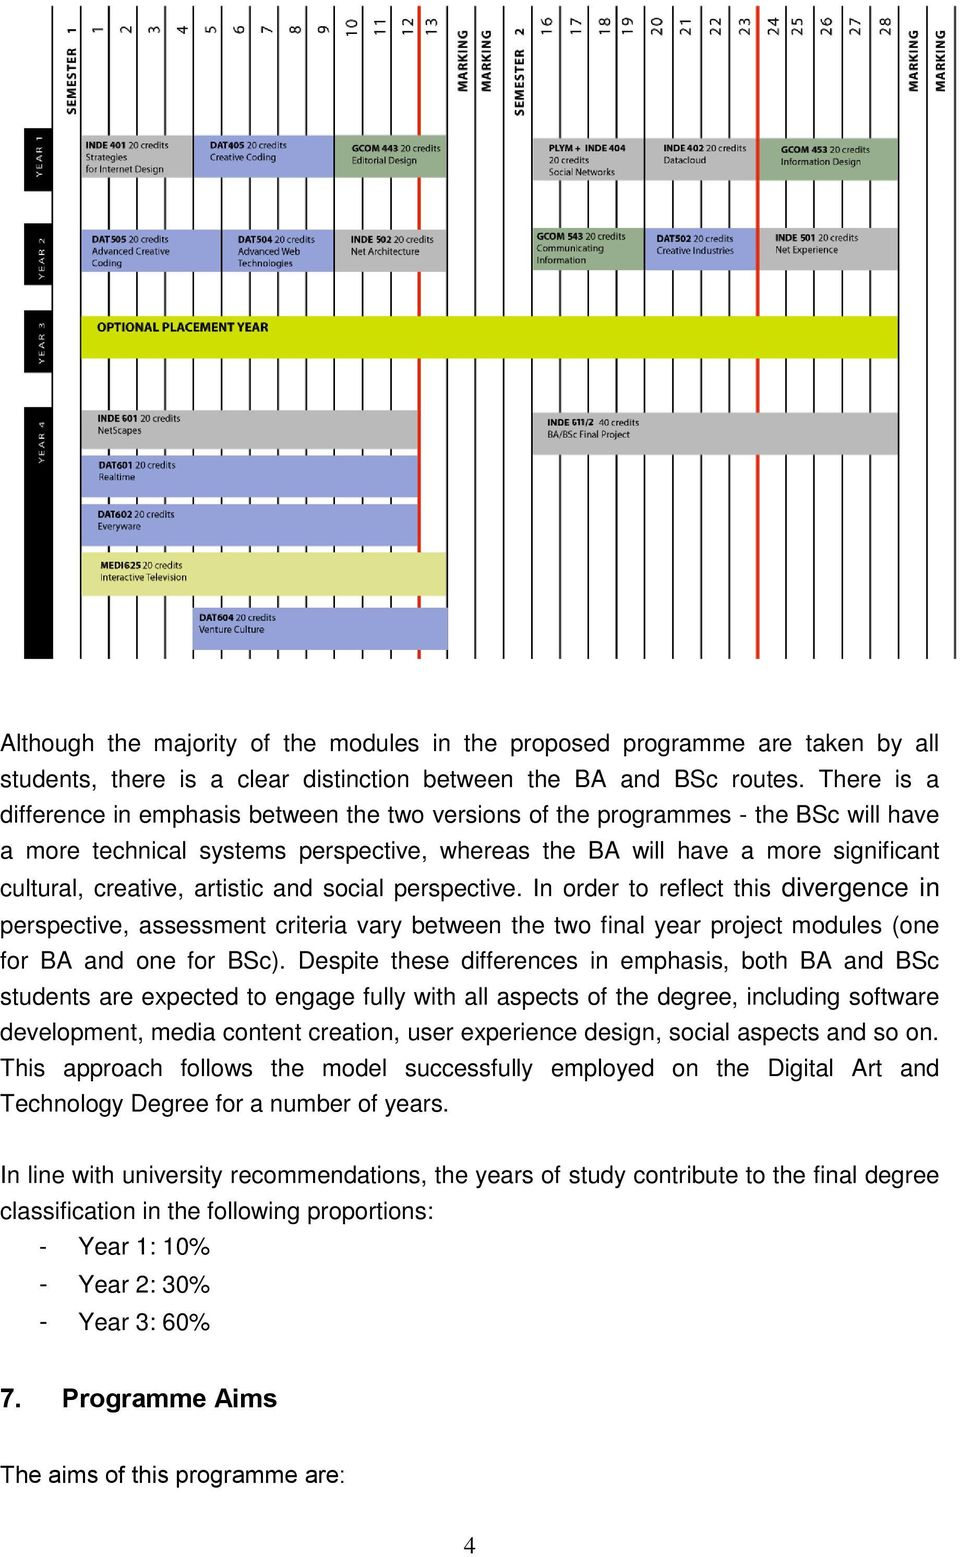 artistic and social perspective. In order to reflect this divergence in perspective, assessment criteria vary between the two final year project modules (one for BA and one for BSc).